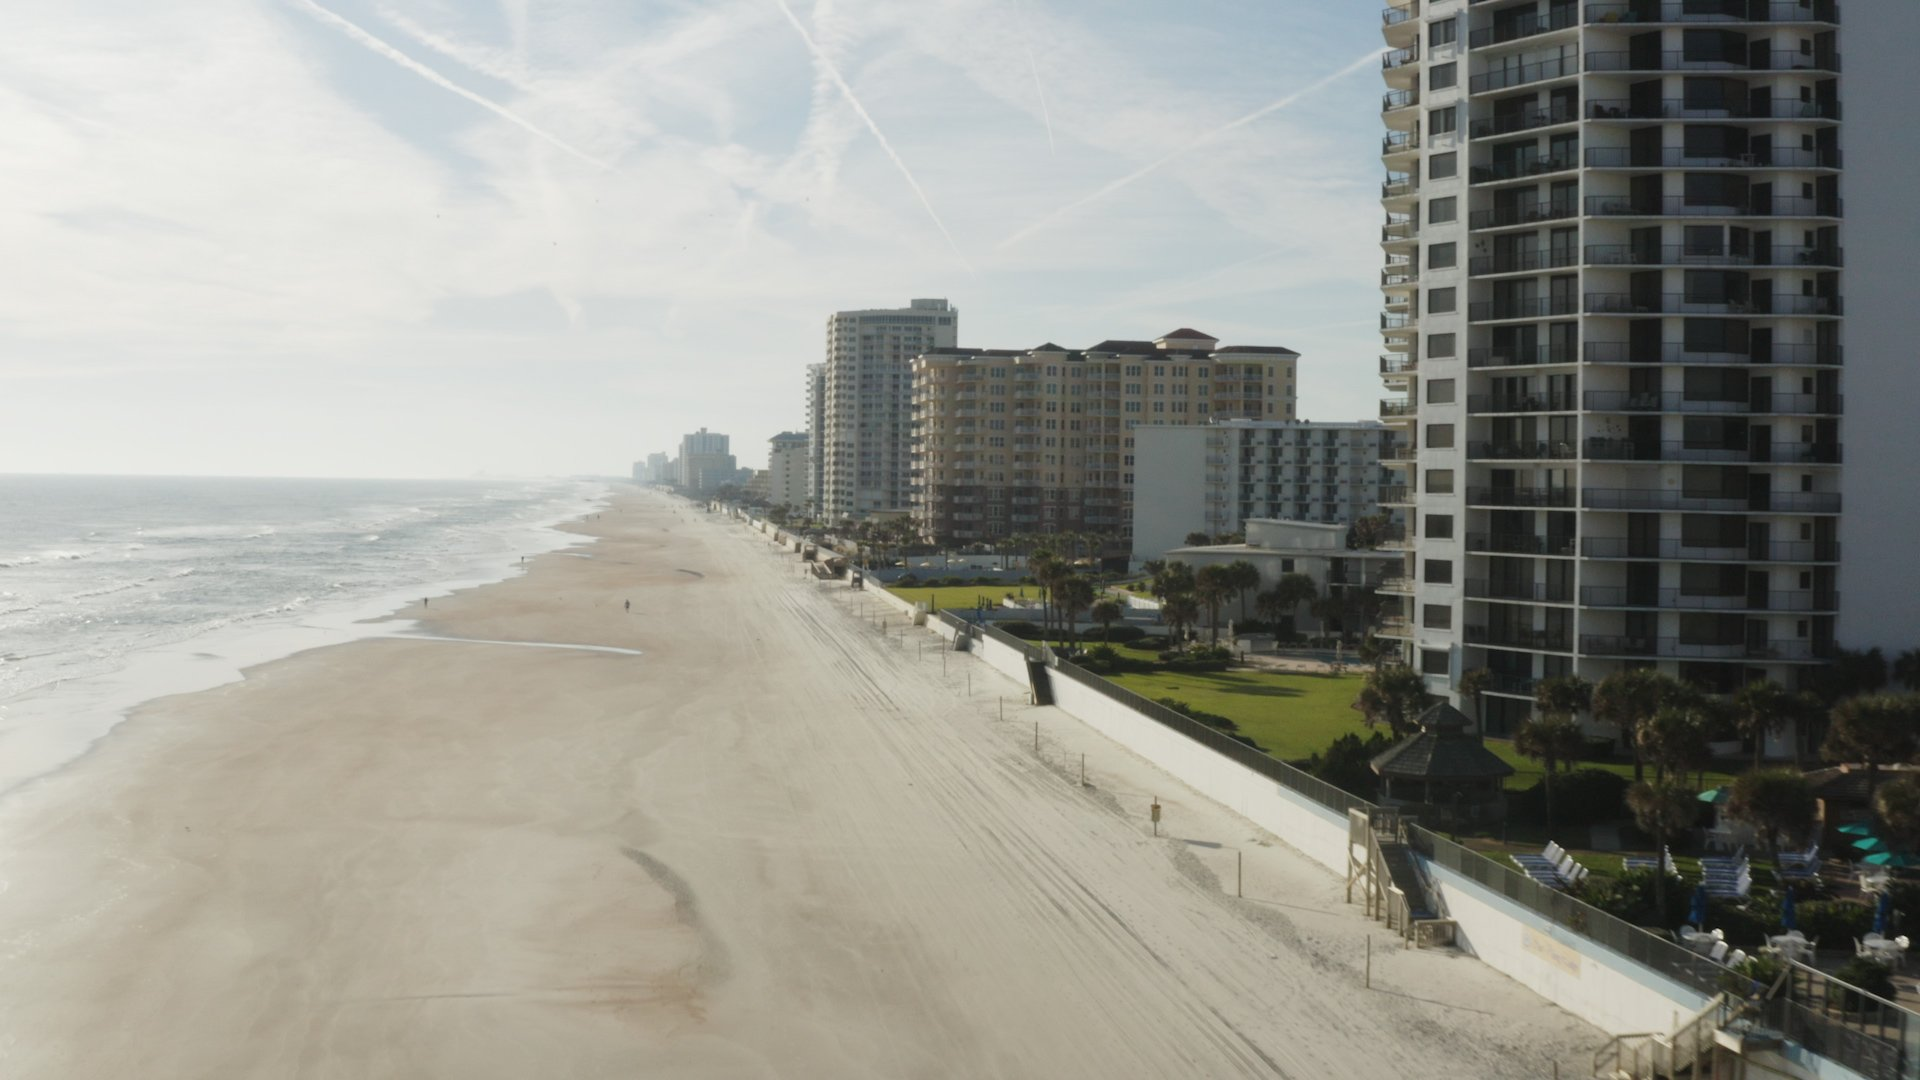 A view of the beach, sea and buildings in Daytona beach, one of the top fishing spots in Florida.